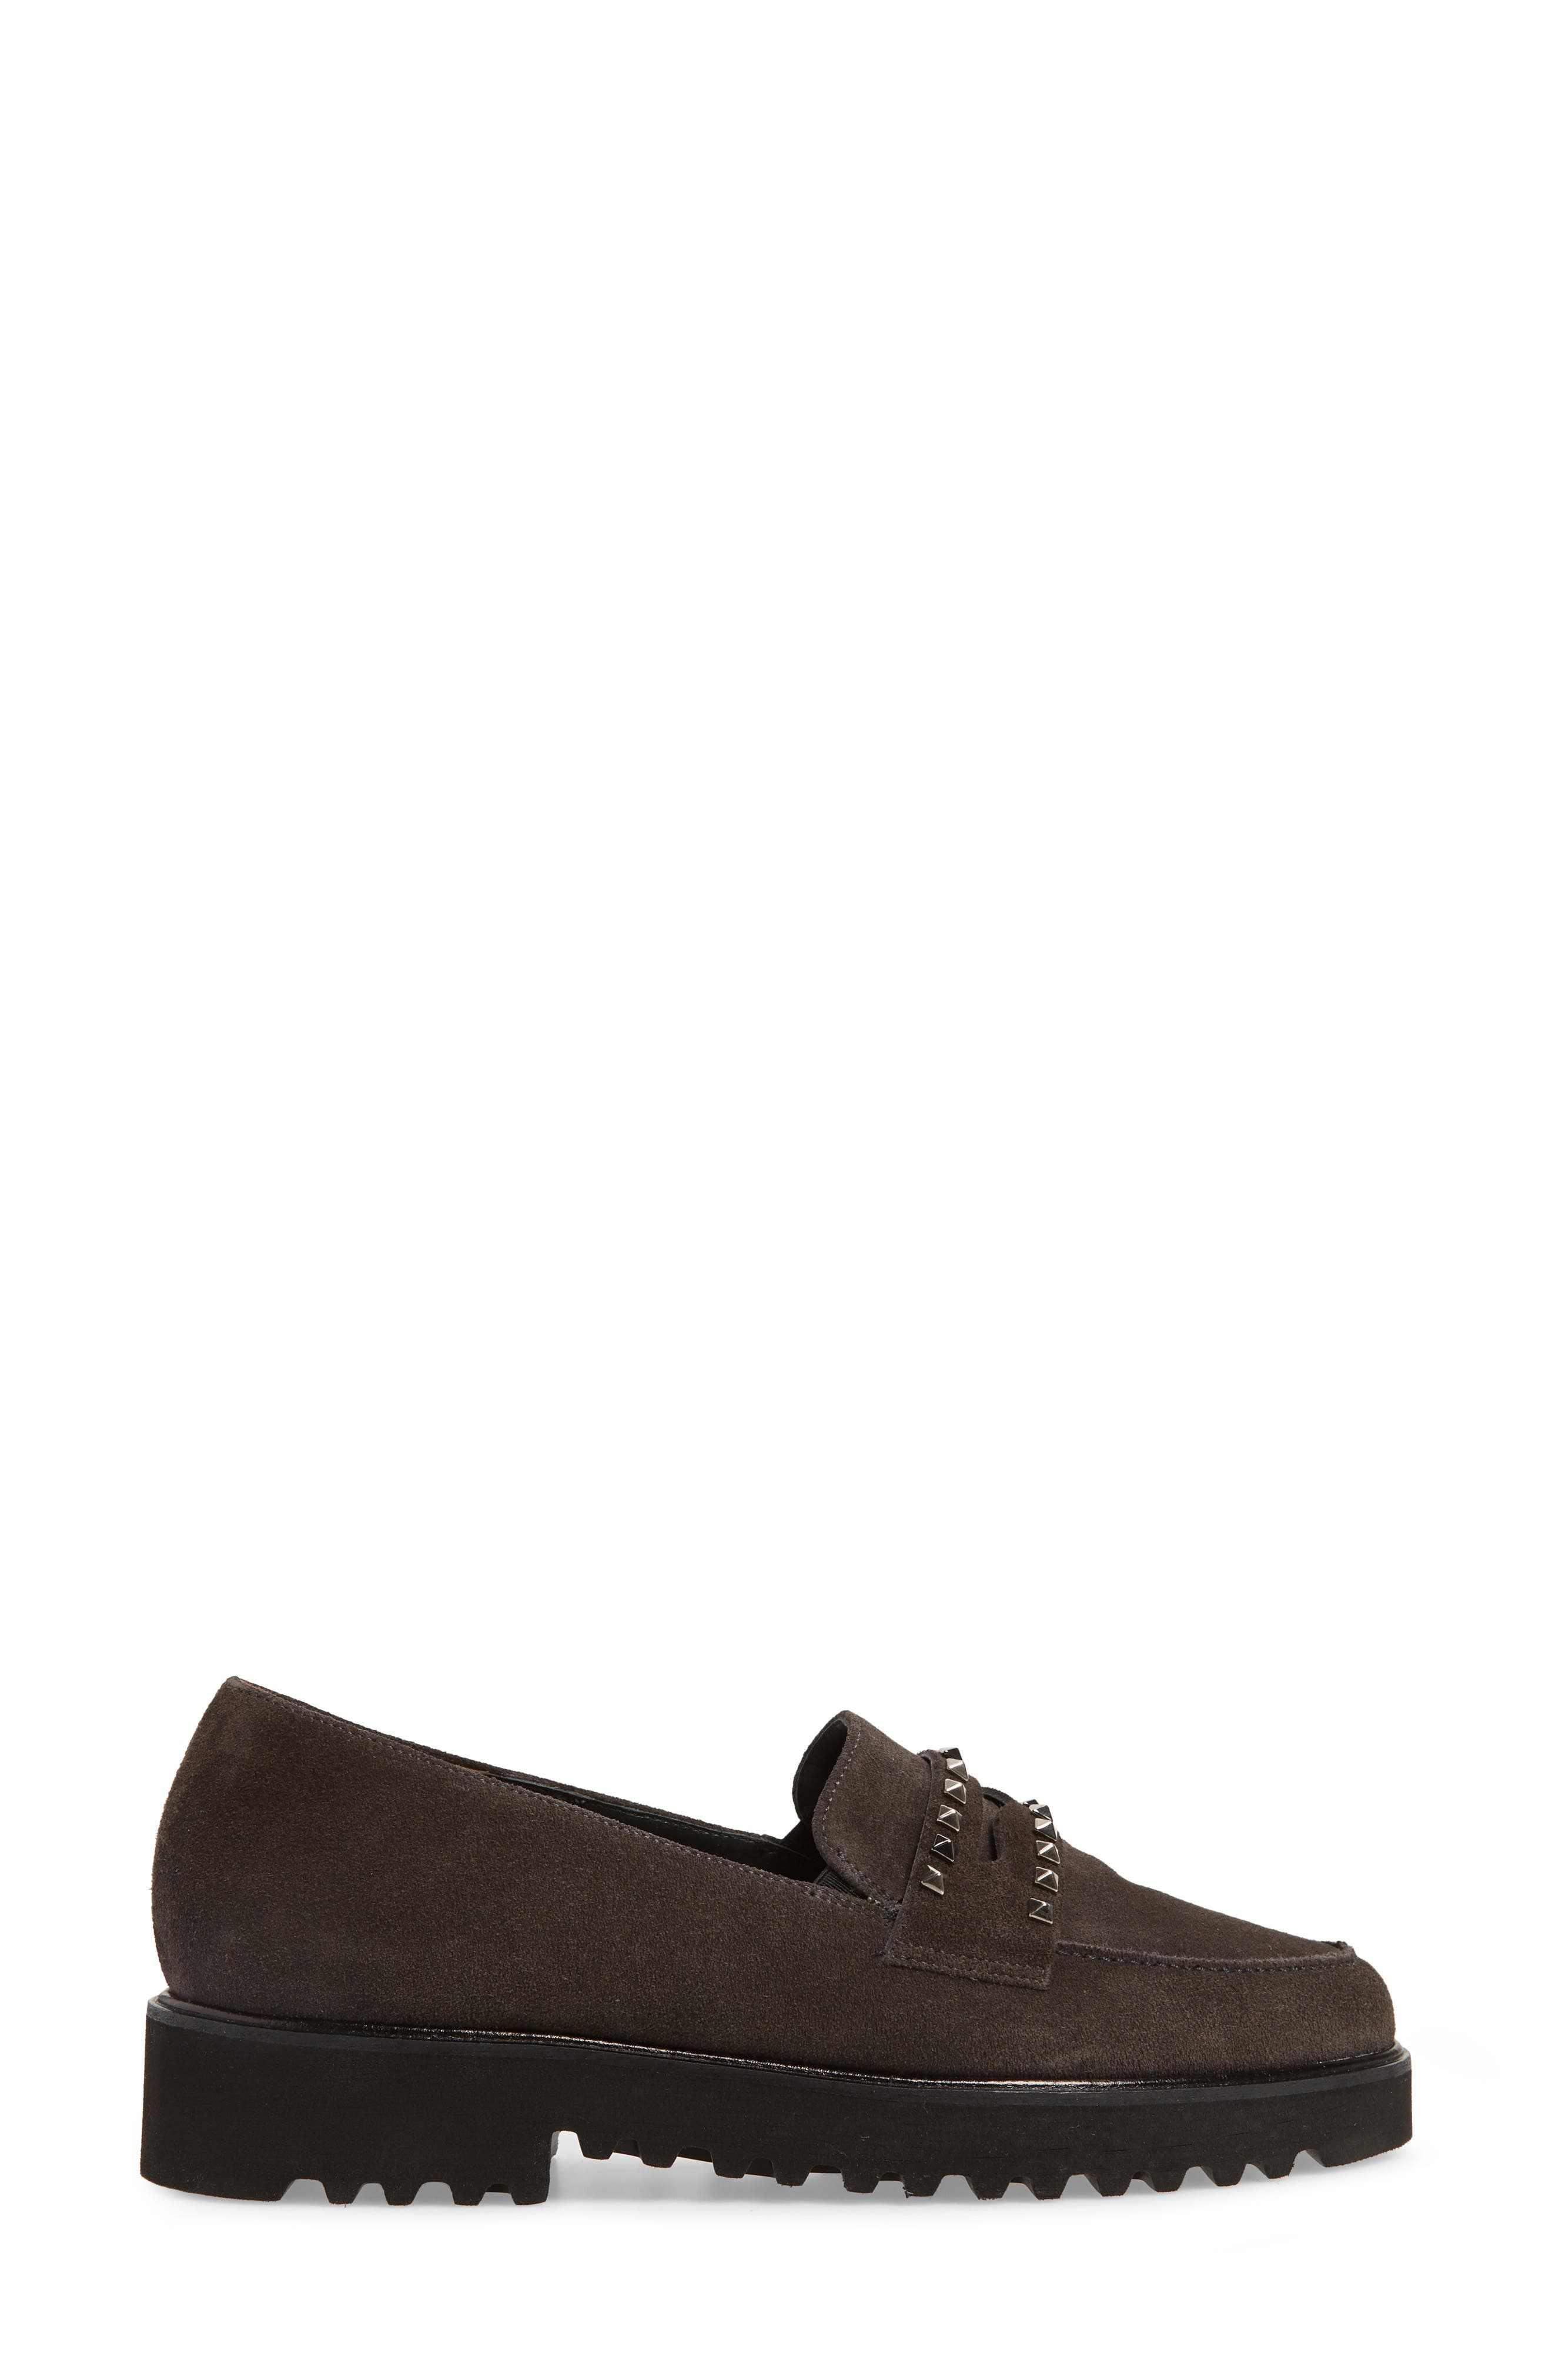 Sofia Loafer,                             Alternate thumbnail 3, color,                             ANTHRACITE SUEDE